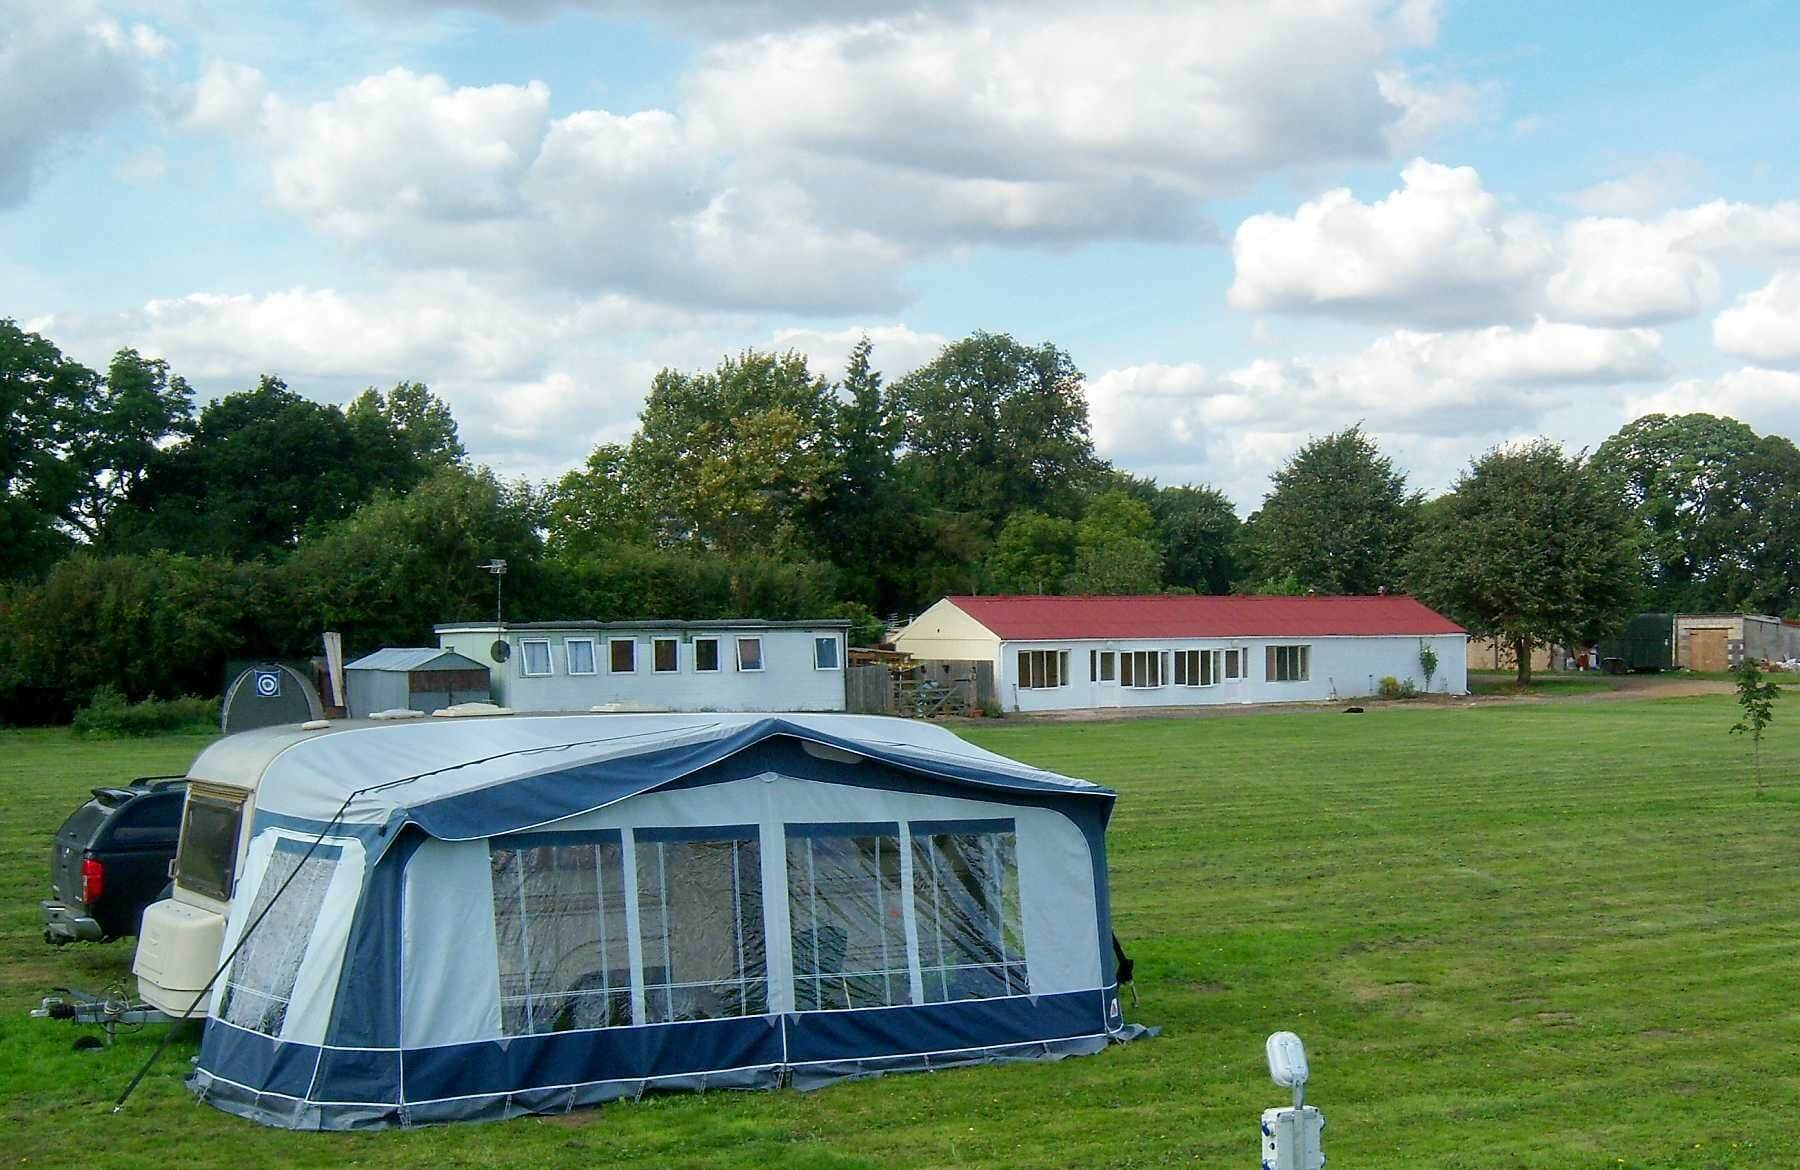 Lode Hall Holiday Park